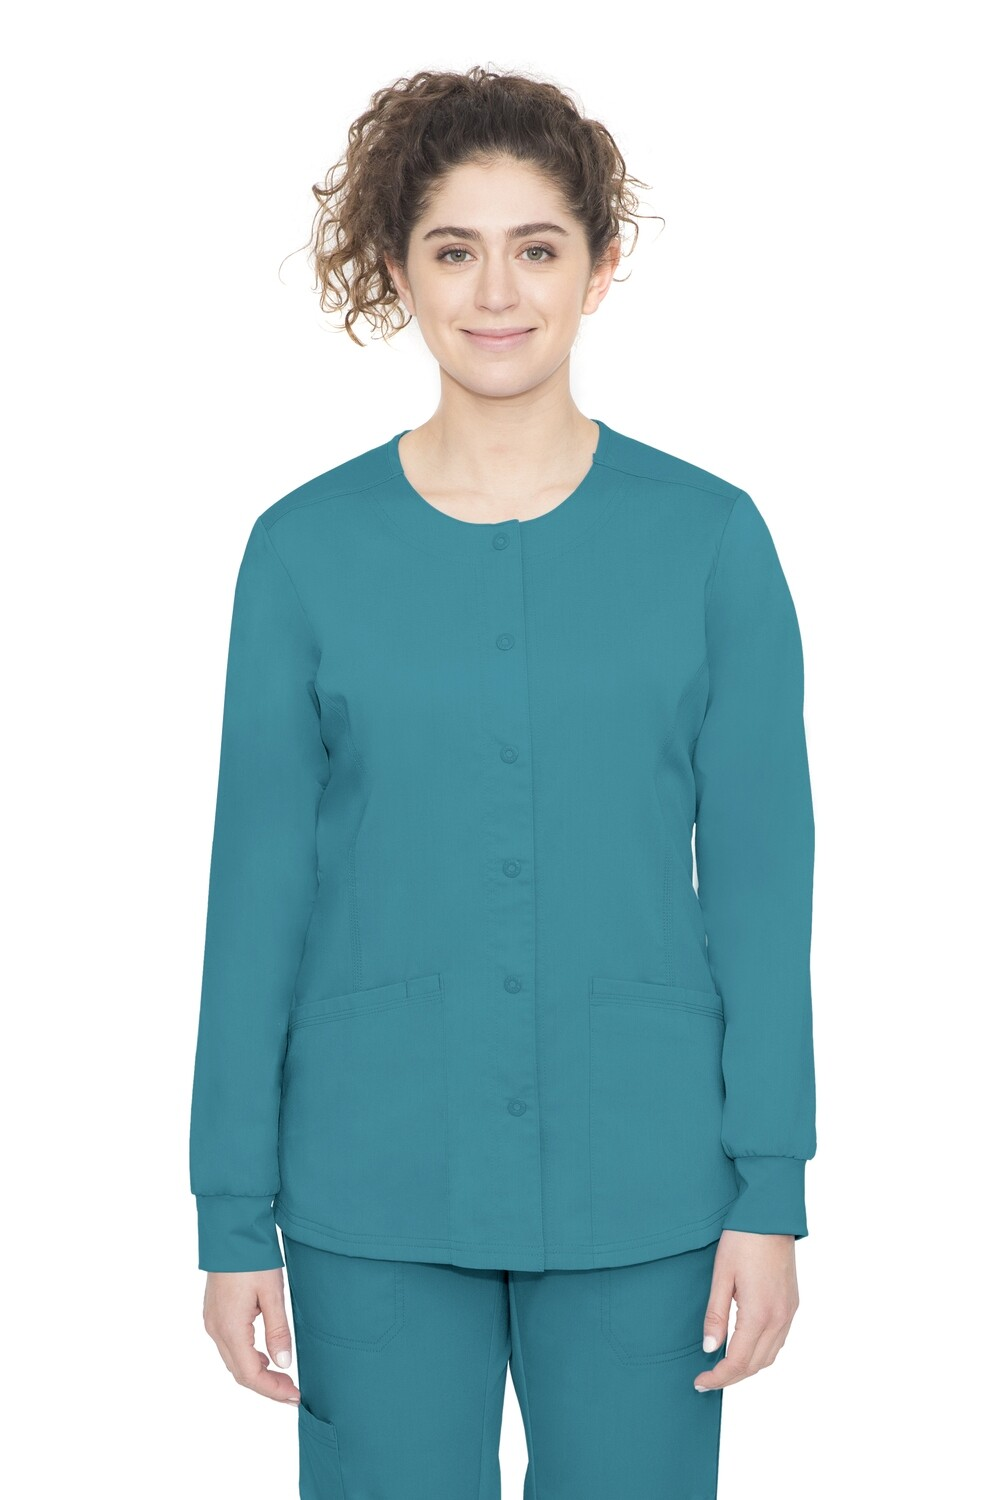 5063 DAISY JACKET TEAL XL